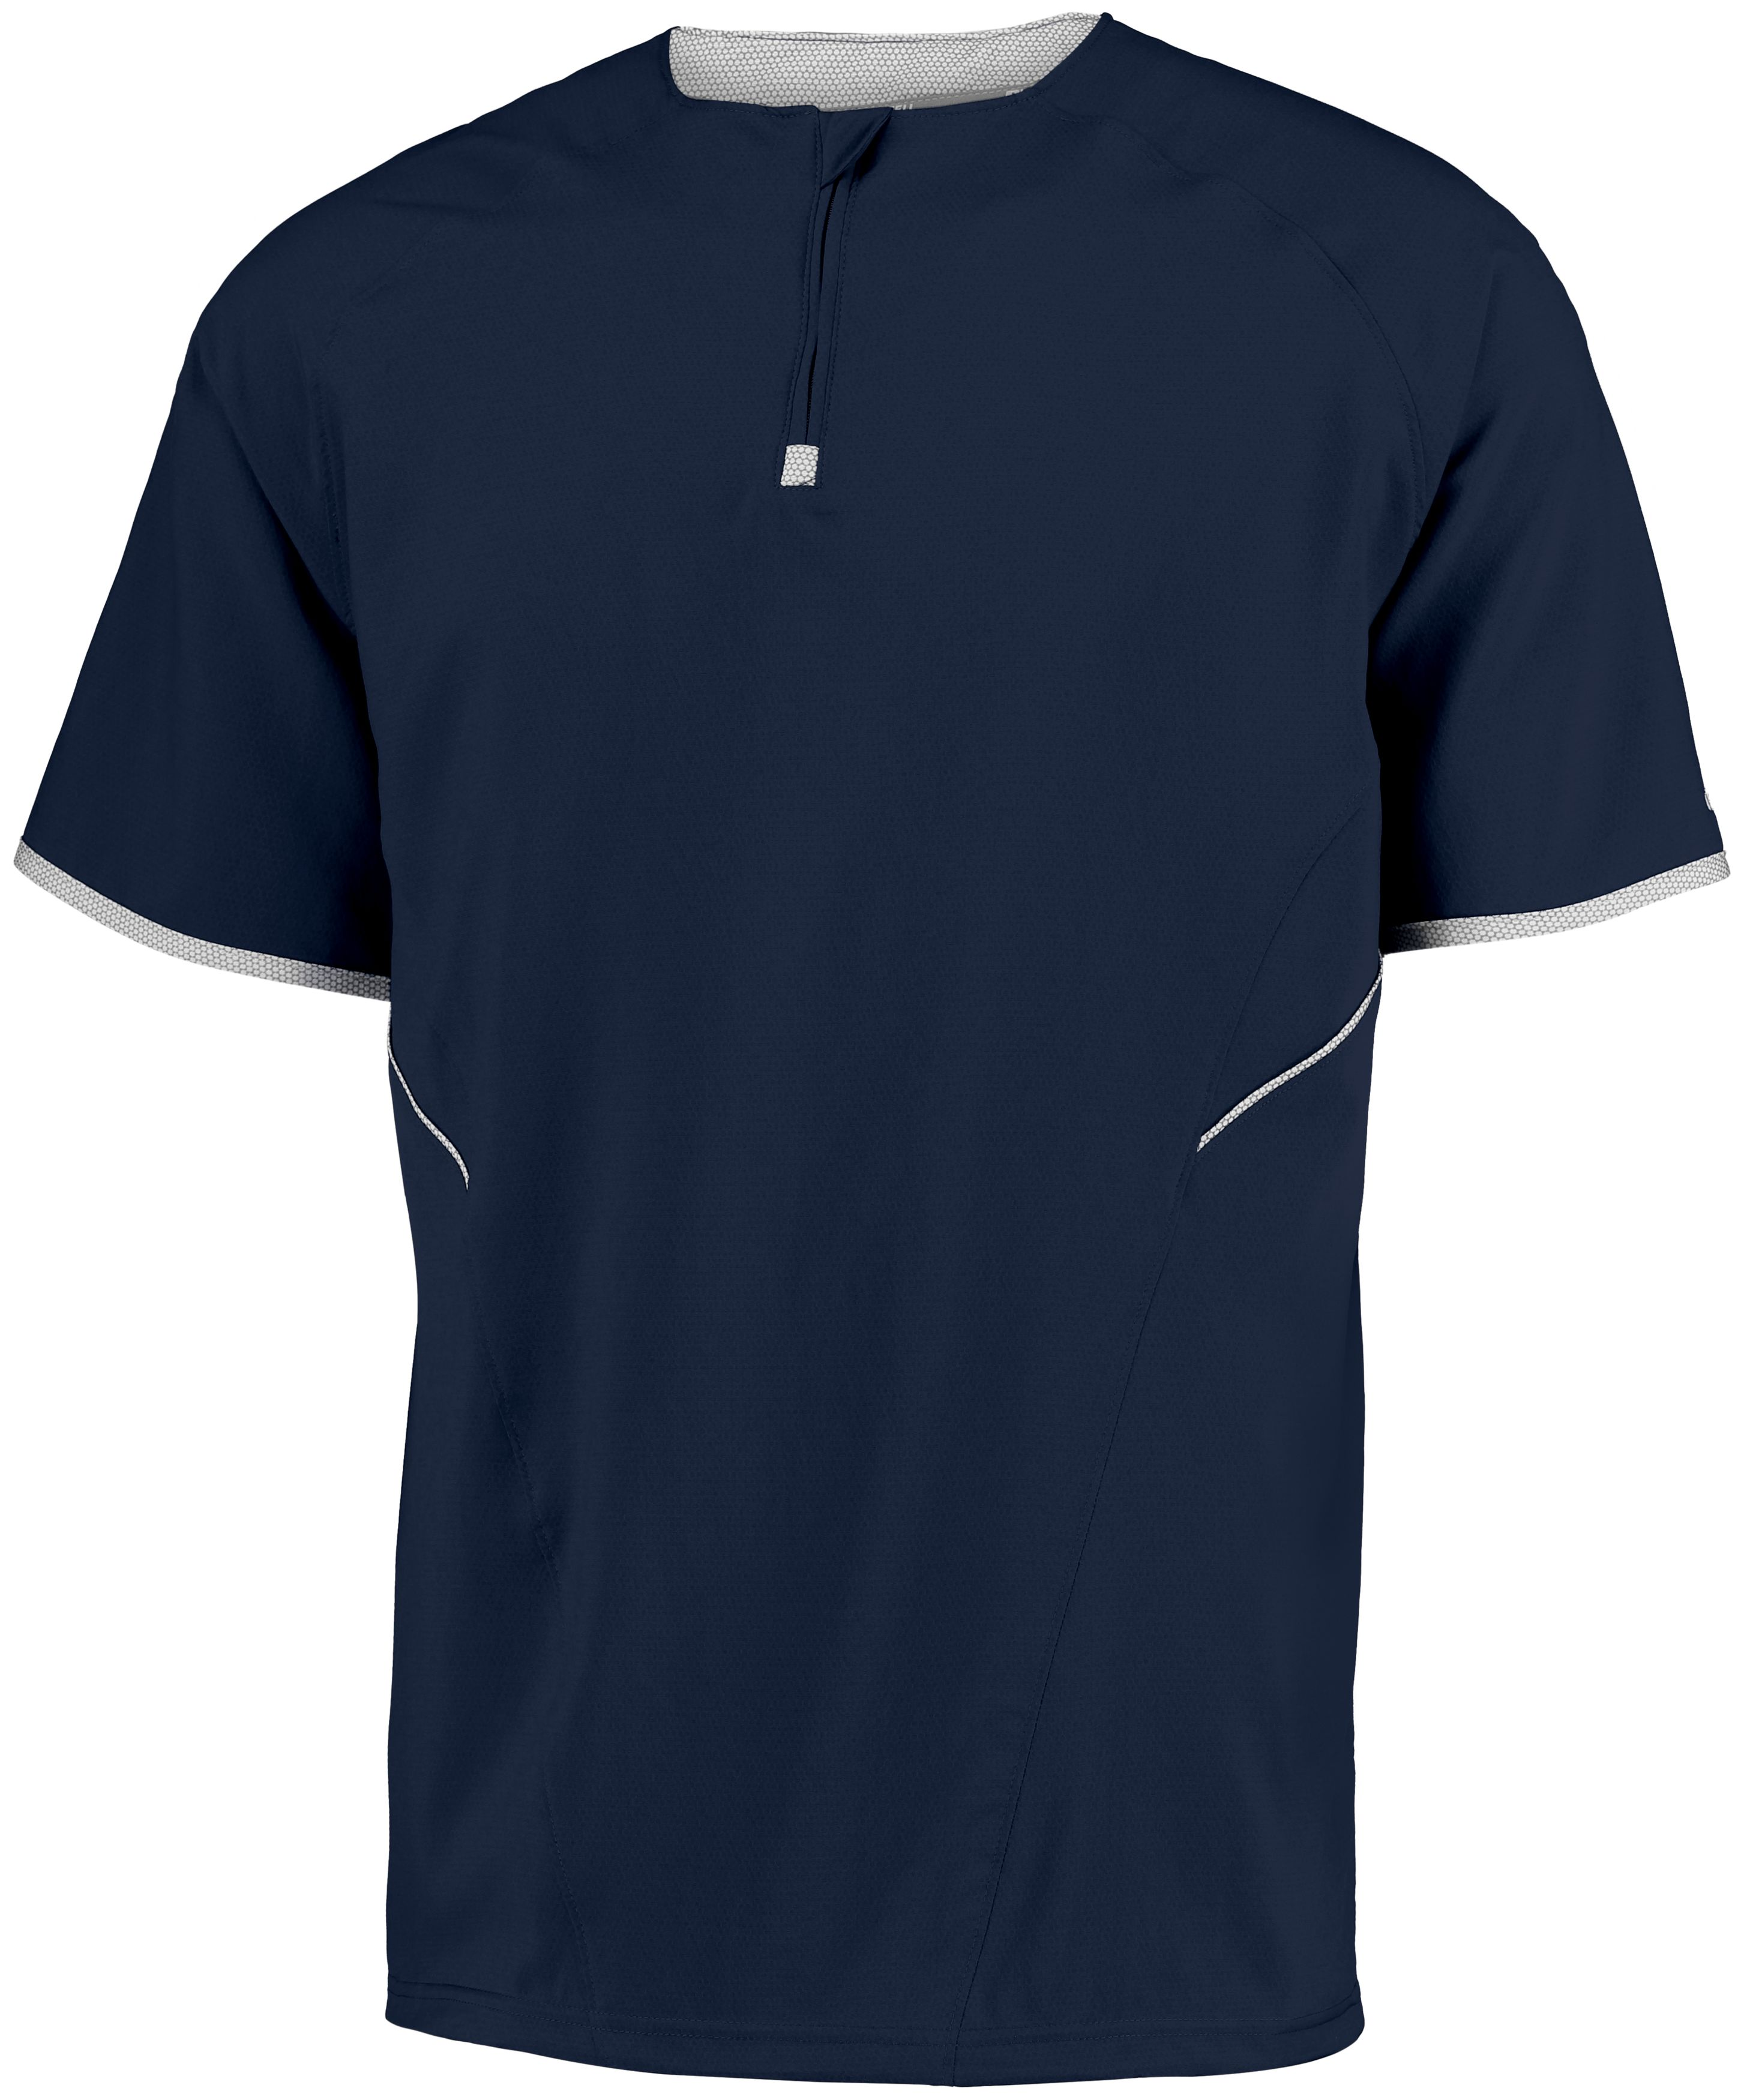 Youth Short Sleeve Pullover - Navy/white